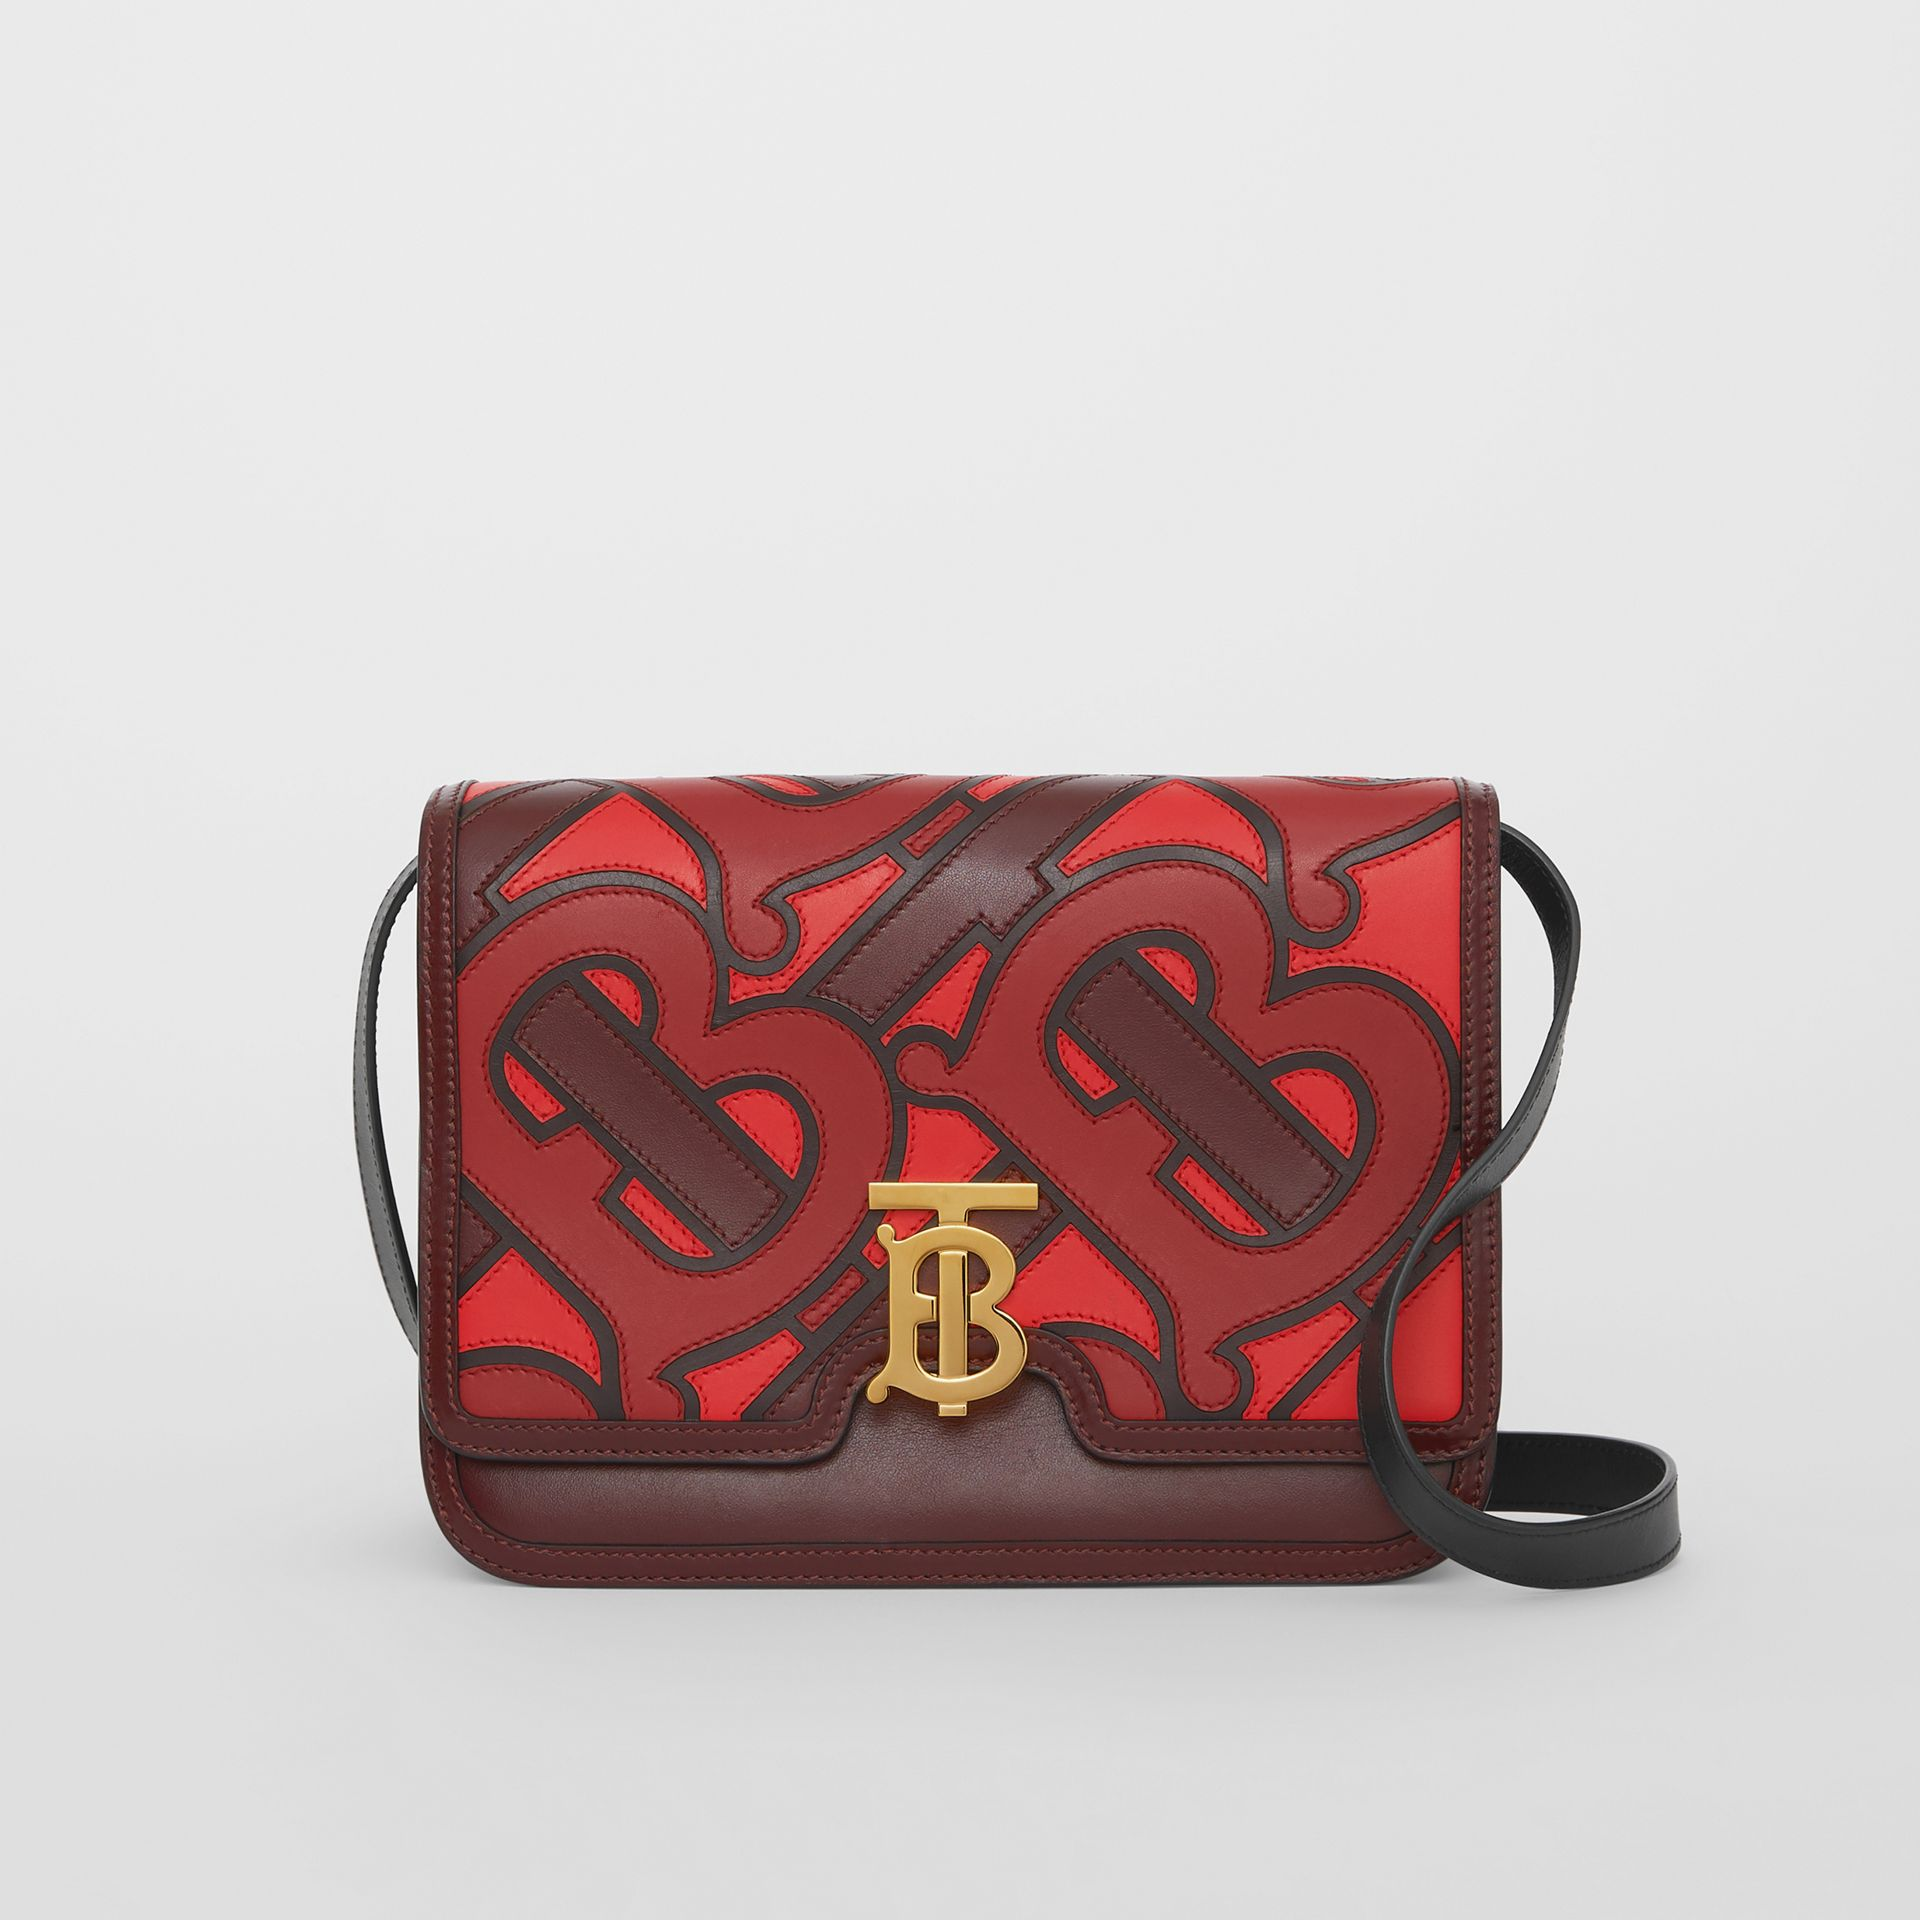 Medium Monogram Appliqué Leather TB Bag in Oxblood - Women | Burberry - gallery image 0